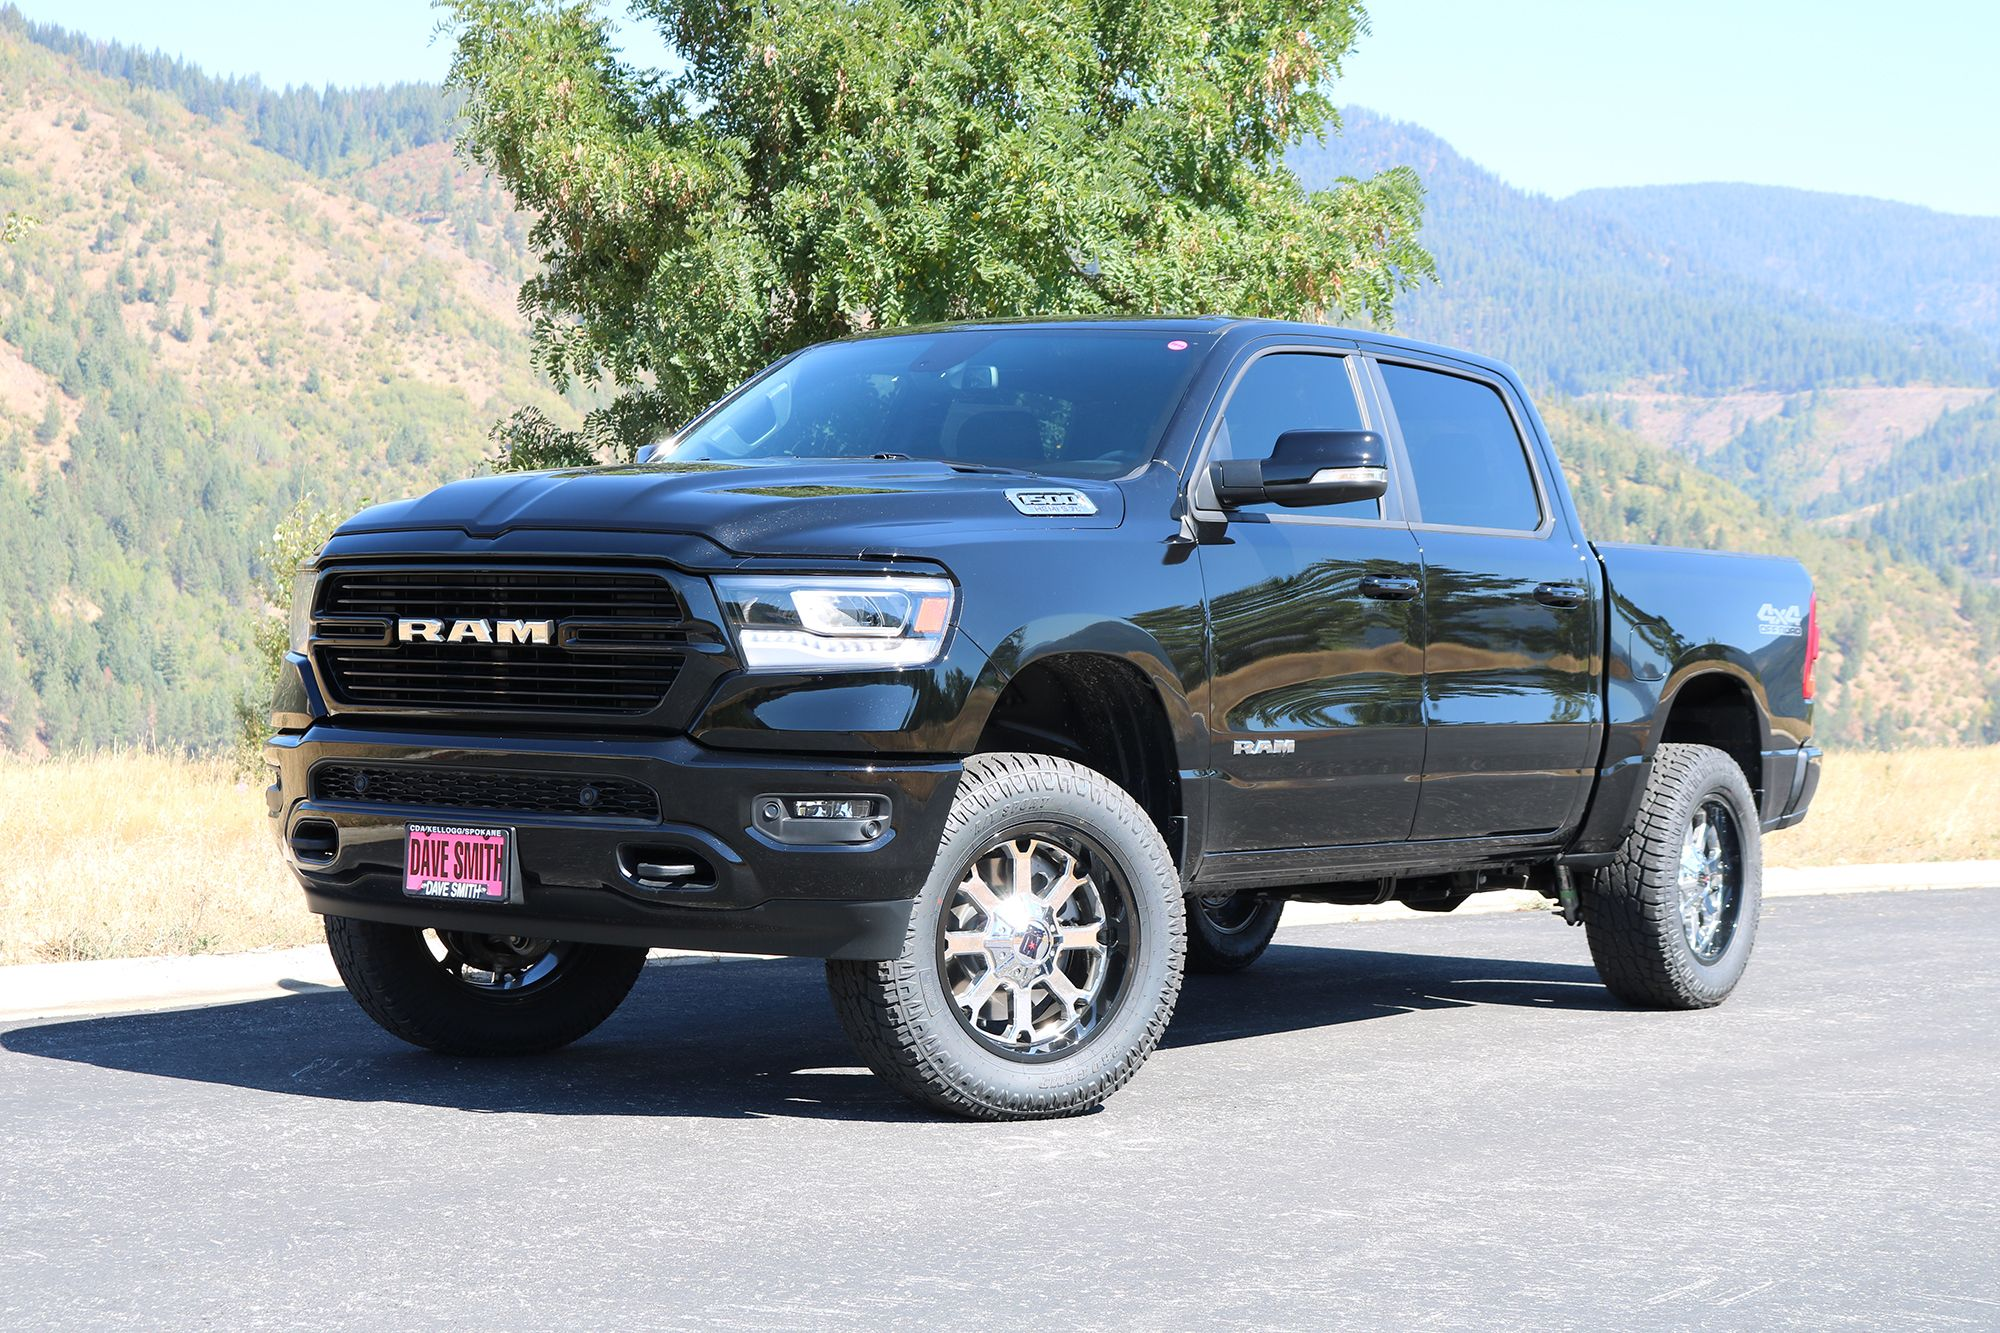 Park Art|My WordPress Blog_How Much Is A Lift Kit For A Dodge Ram 1500